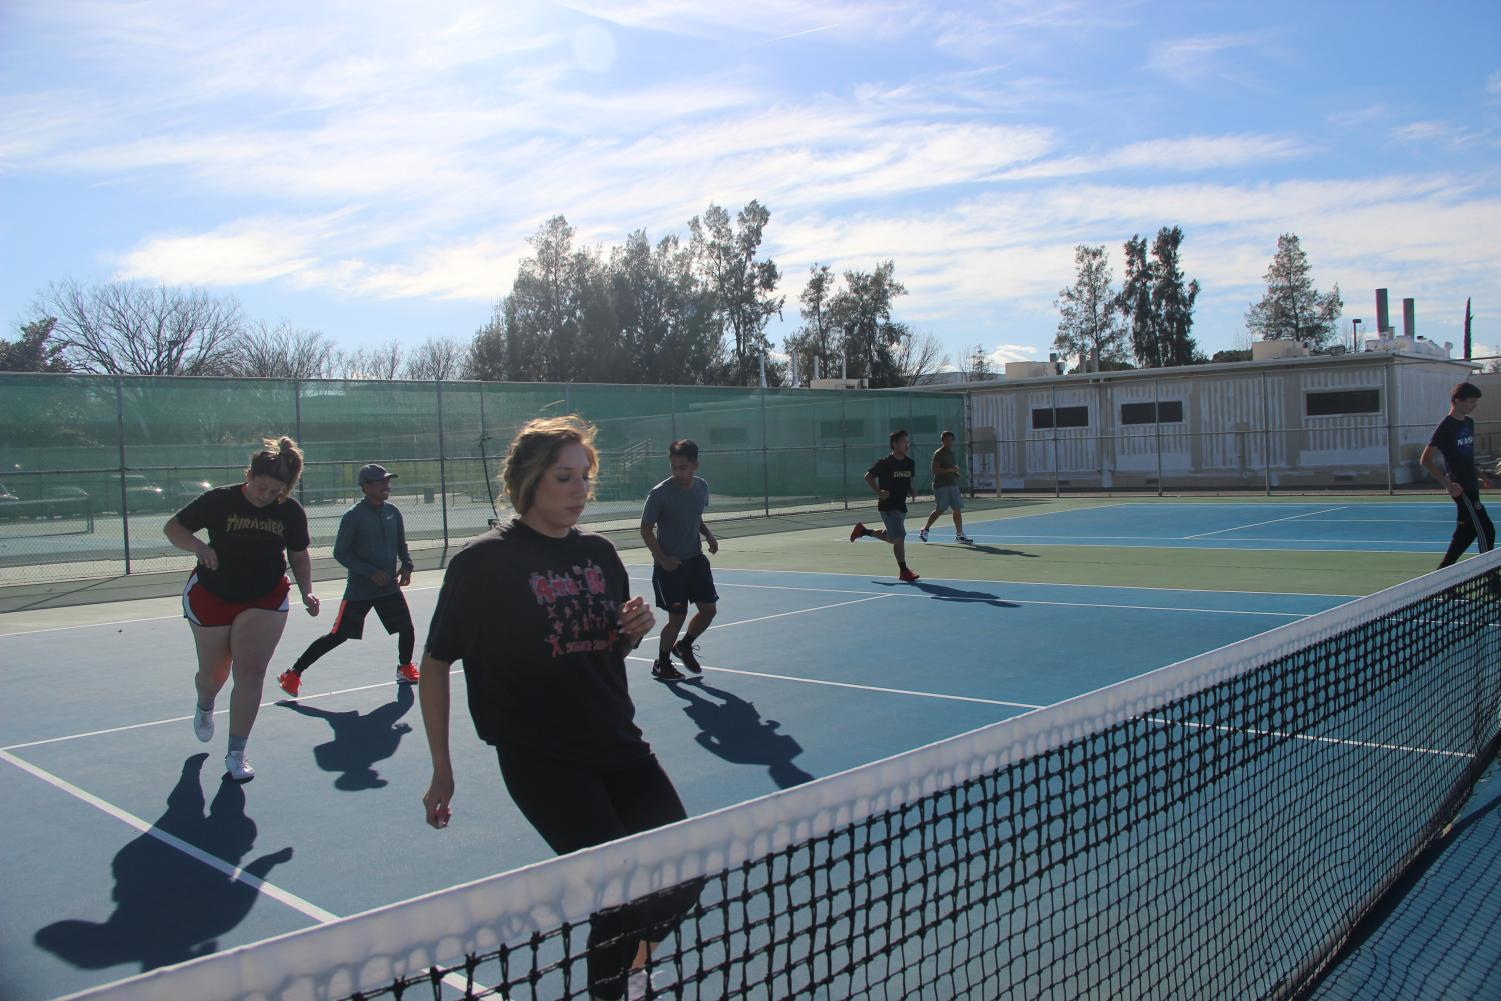 The Hawks' tennis teams practice together. The teams said condition would be a key factor to a successful season.